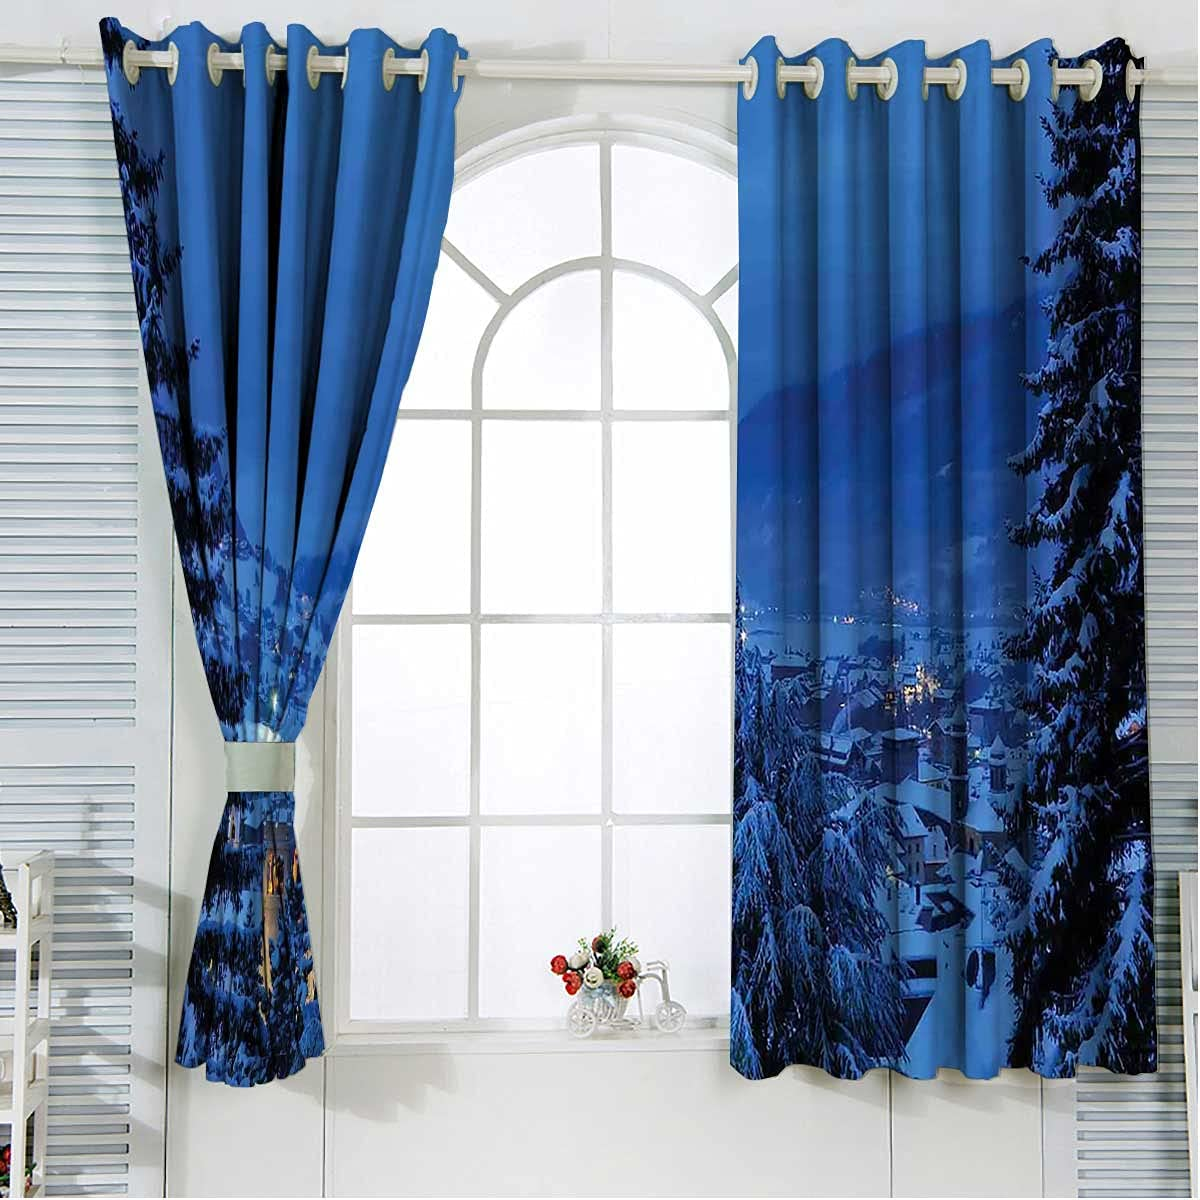 100% Blackout Curtains 84 Max 48% OFF Inches Bla Forest Length Spring new work one after another Winter Trees